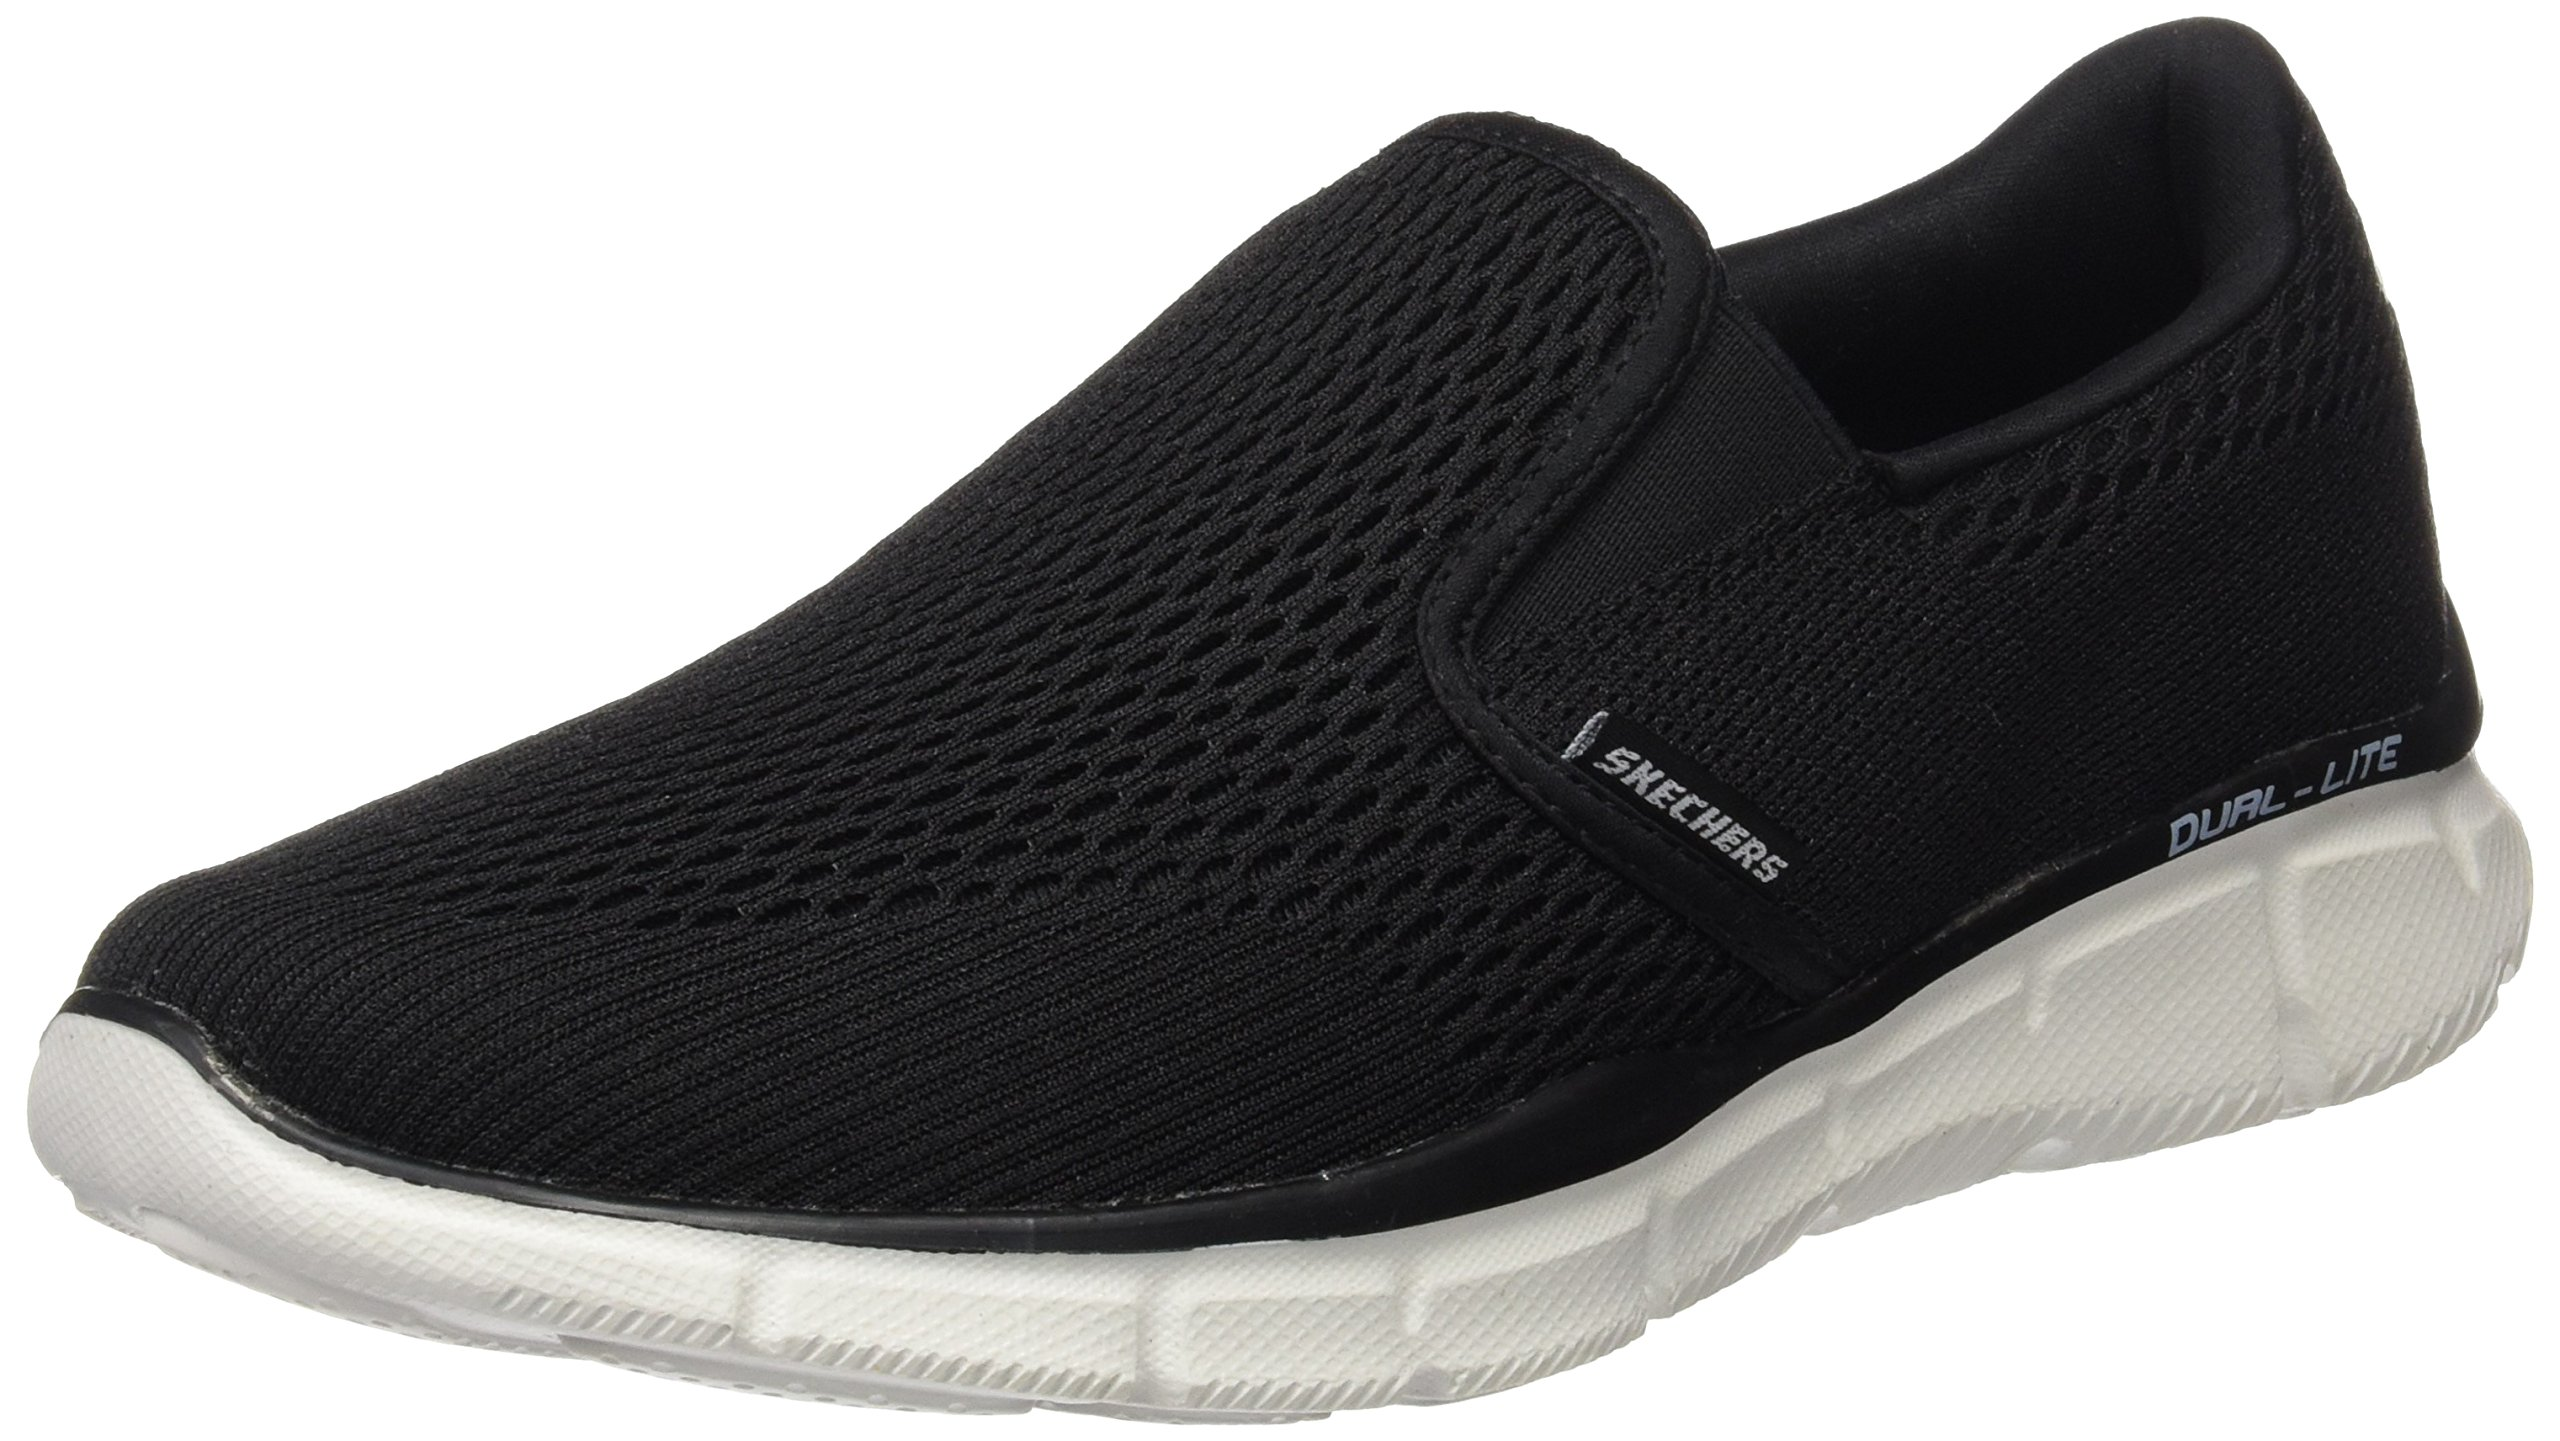 buy online 572d0 ffa82 Skechers Equalizer Double Play, Men s Fitness Shoes